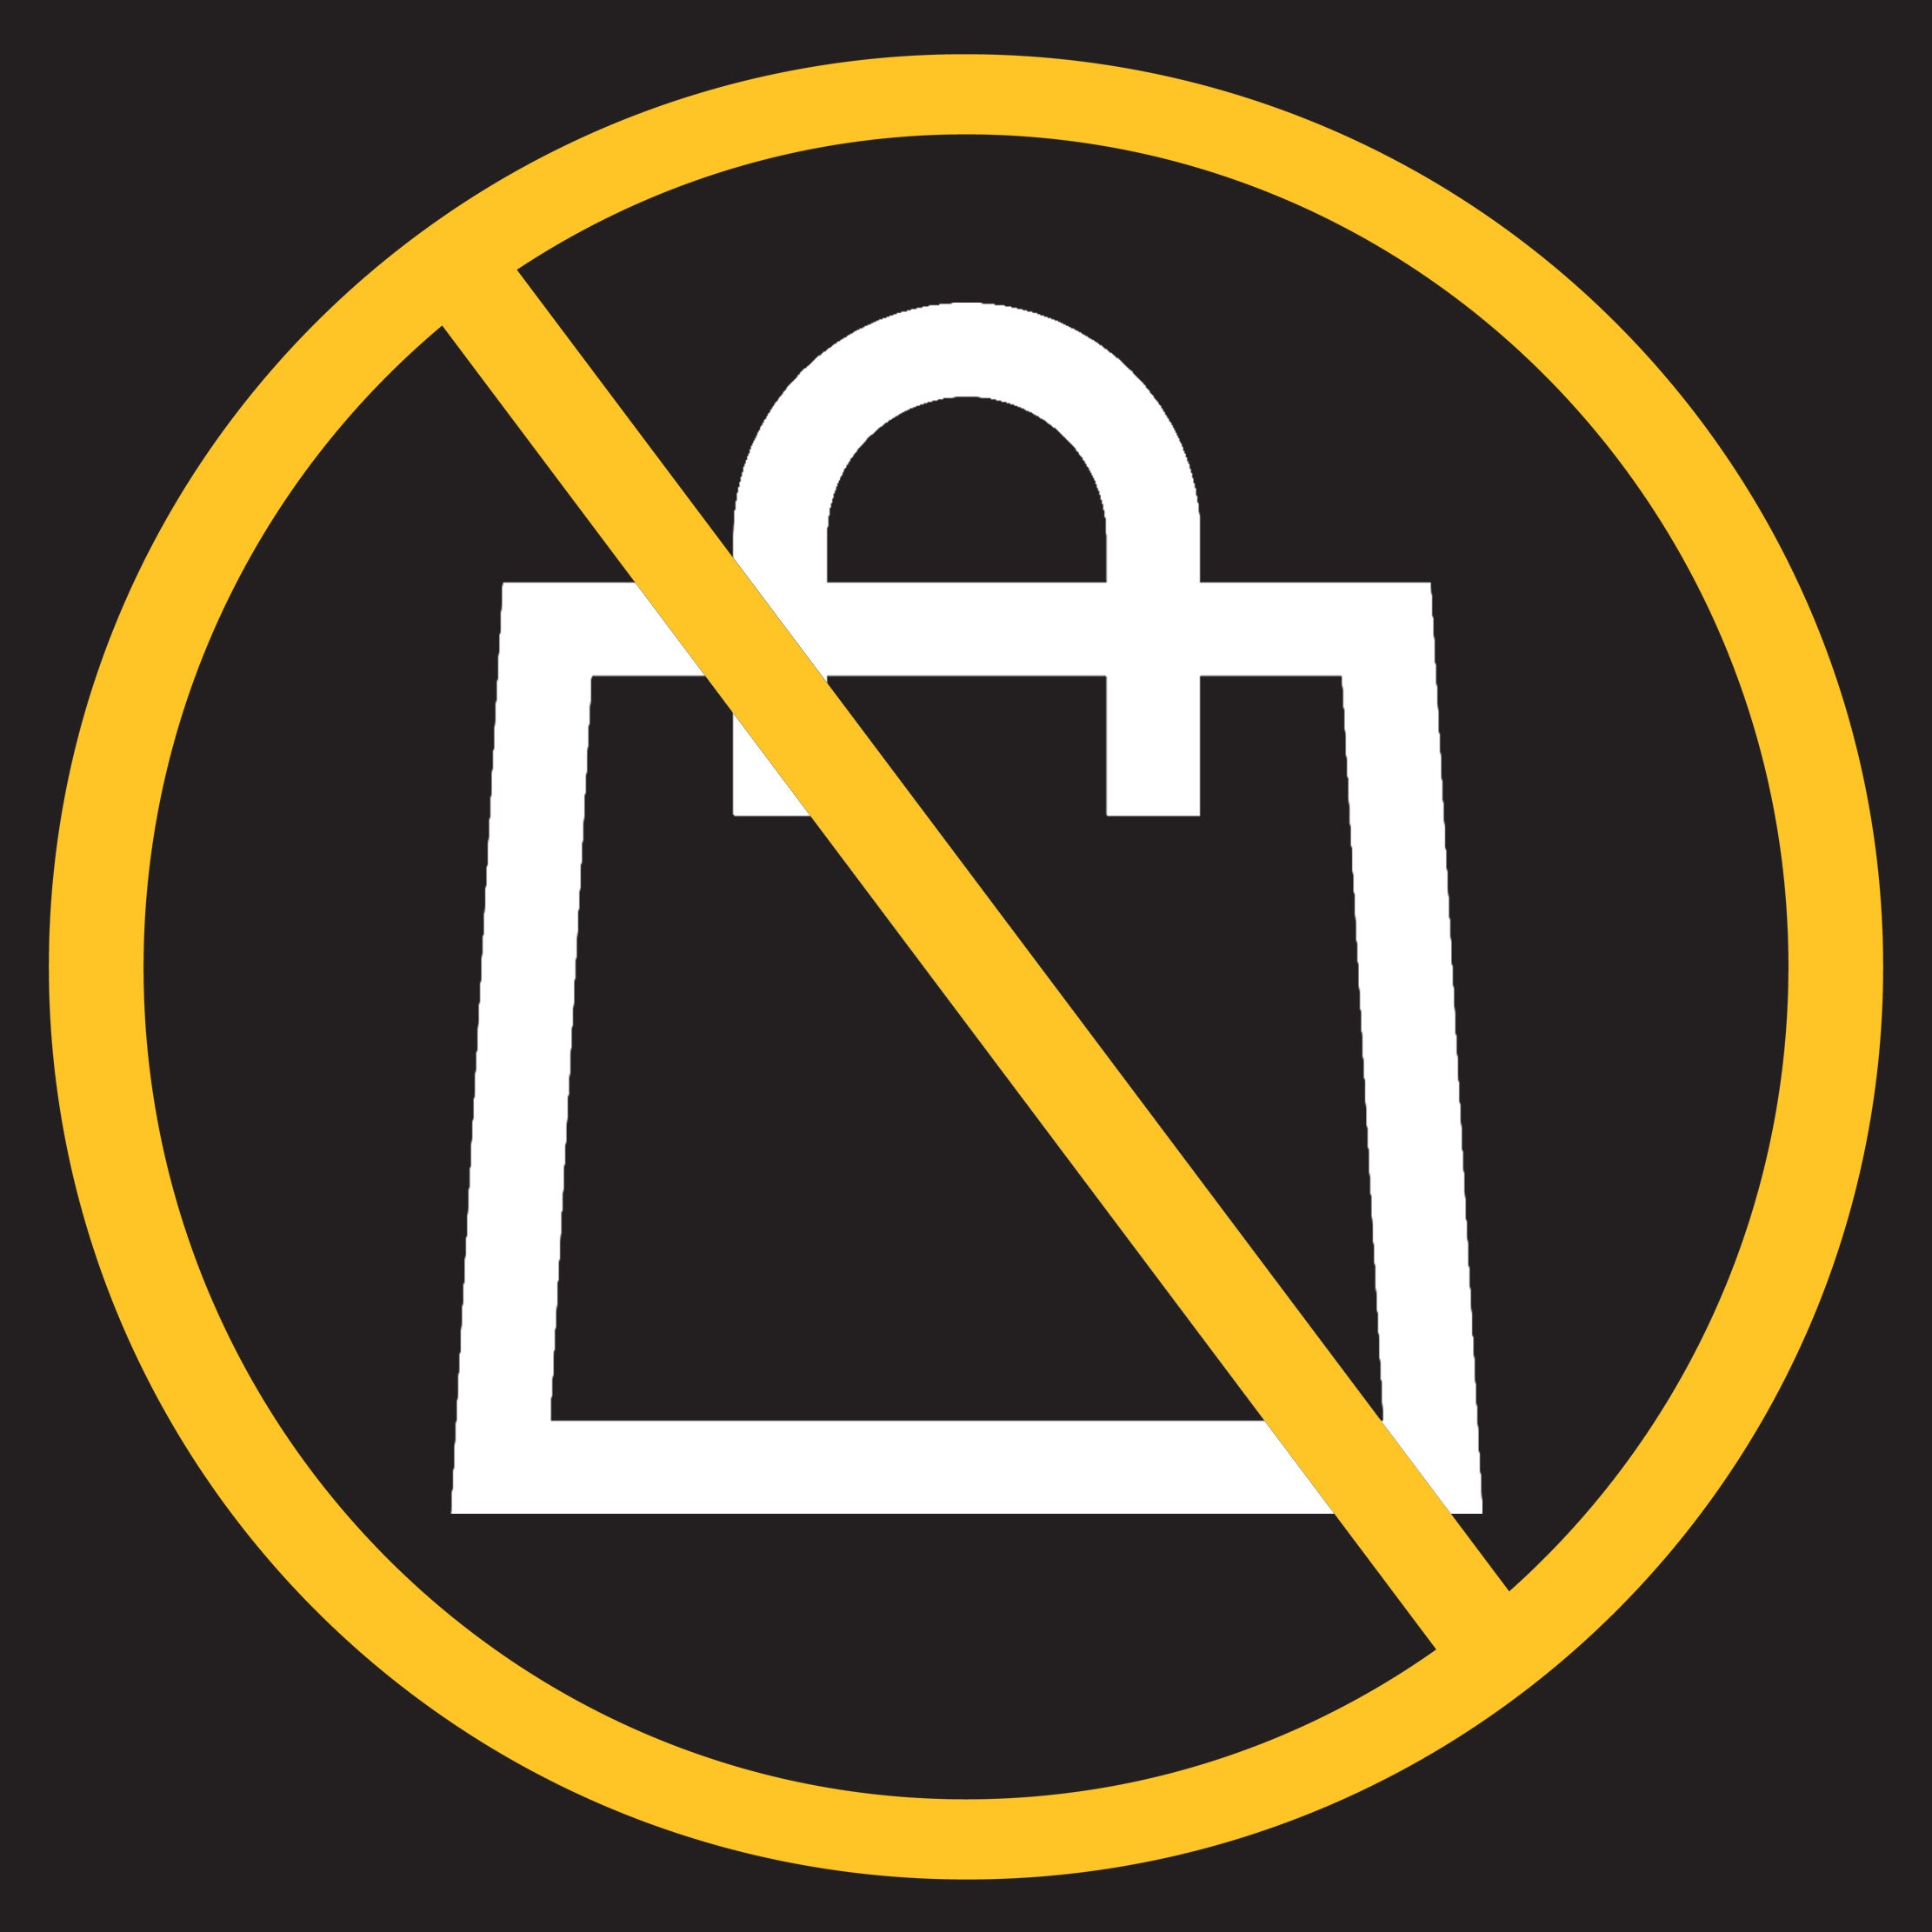 No bags allowed image